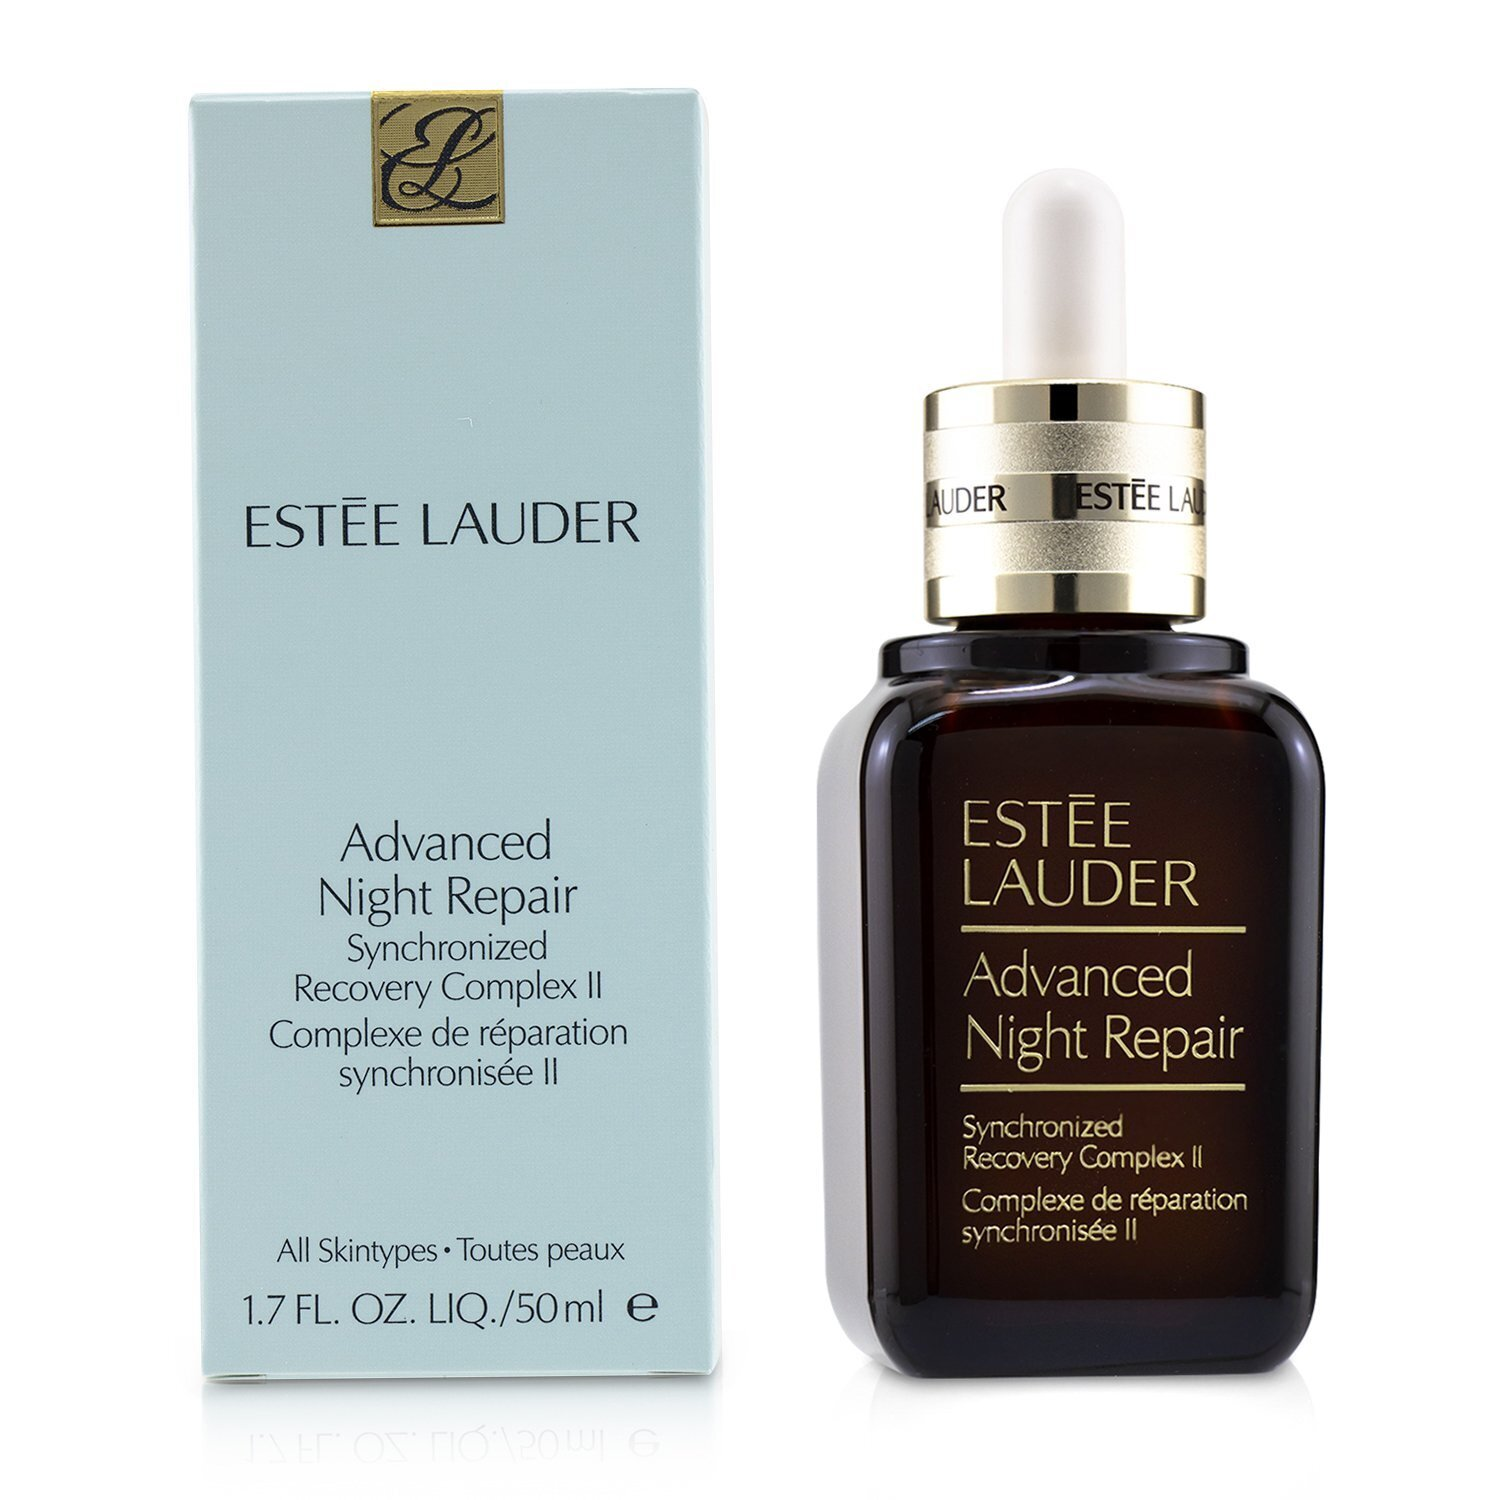 Estee-Lauder-Advanced-Night-Repair-Synchronized-Recovery-Complex-II-30ml-1oz thumbnail 9